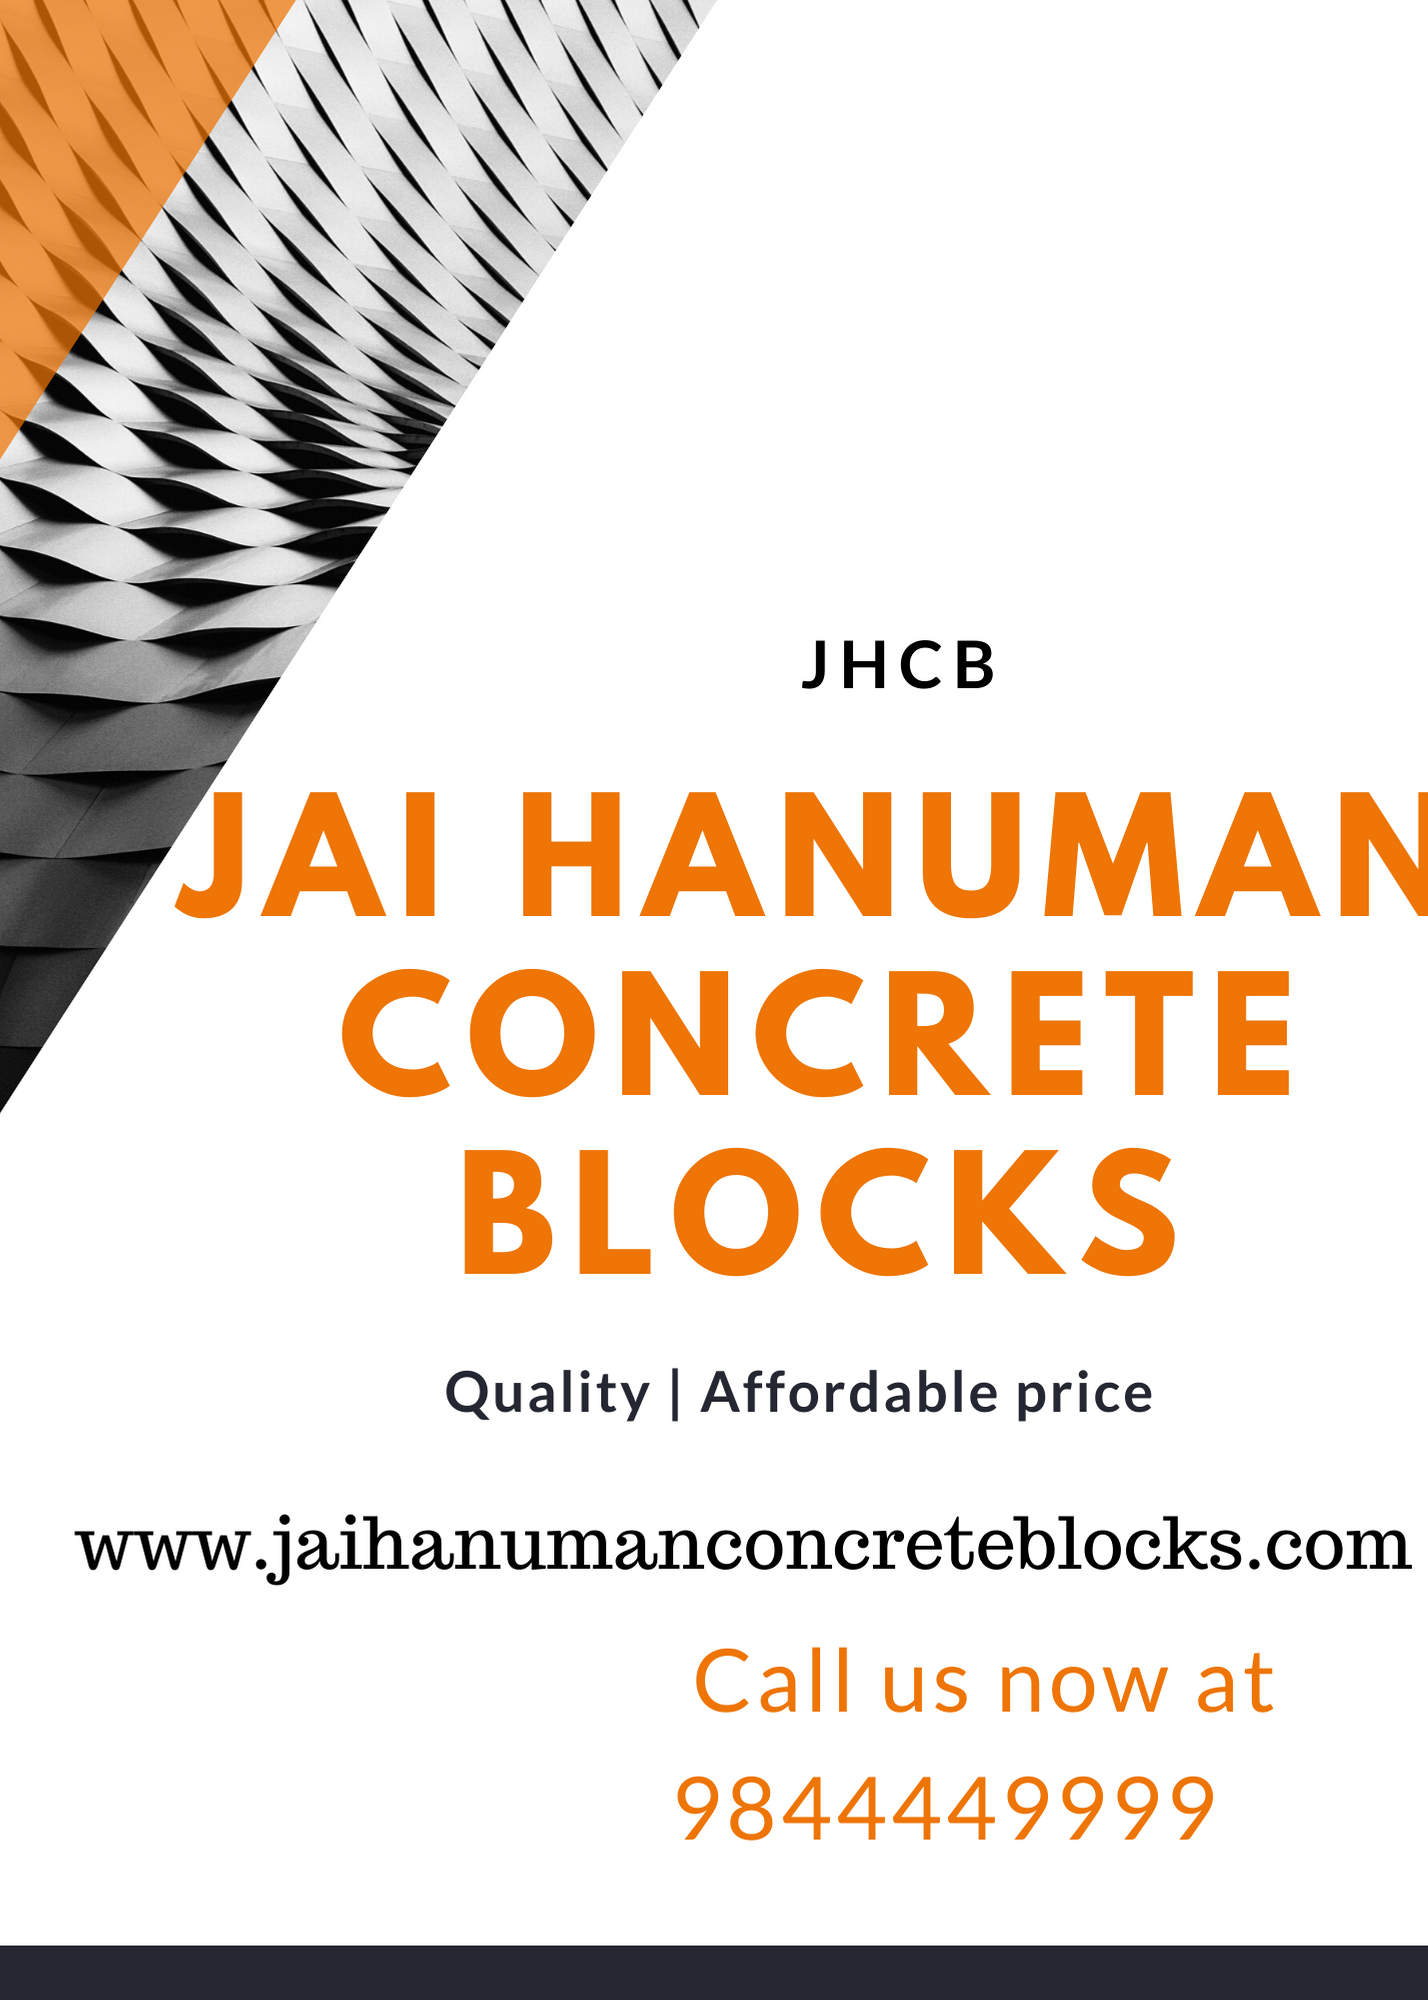 Concrete block Manufacturers in Bangalore-Real Estate-For Sell-Vacation Property-Bangalore